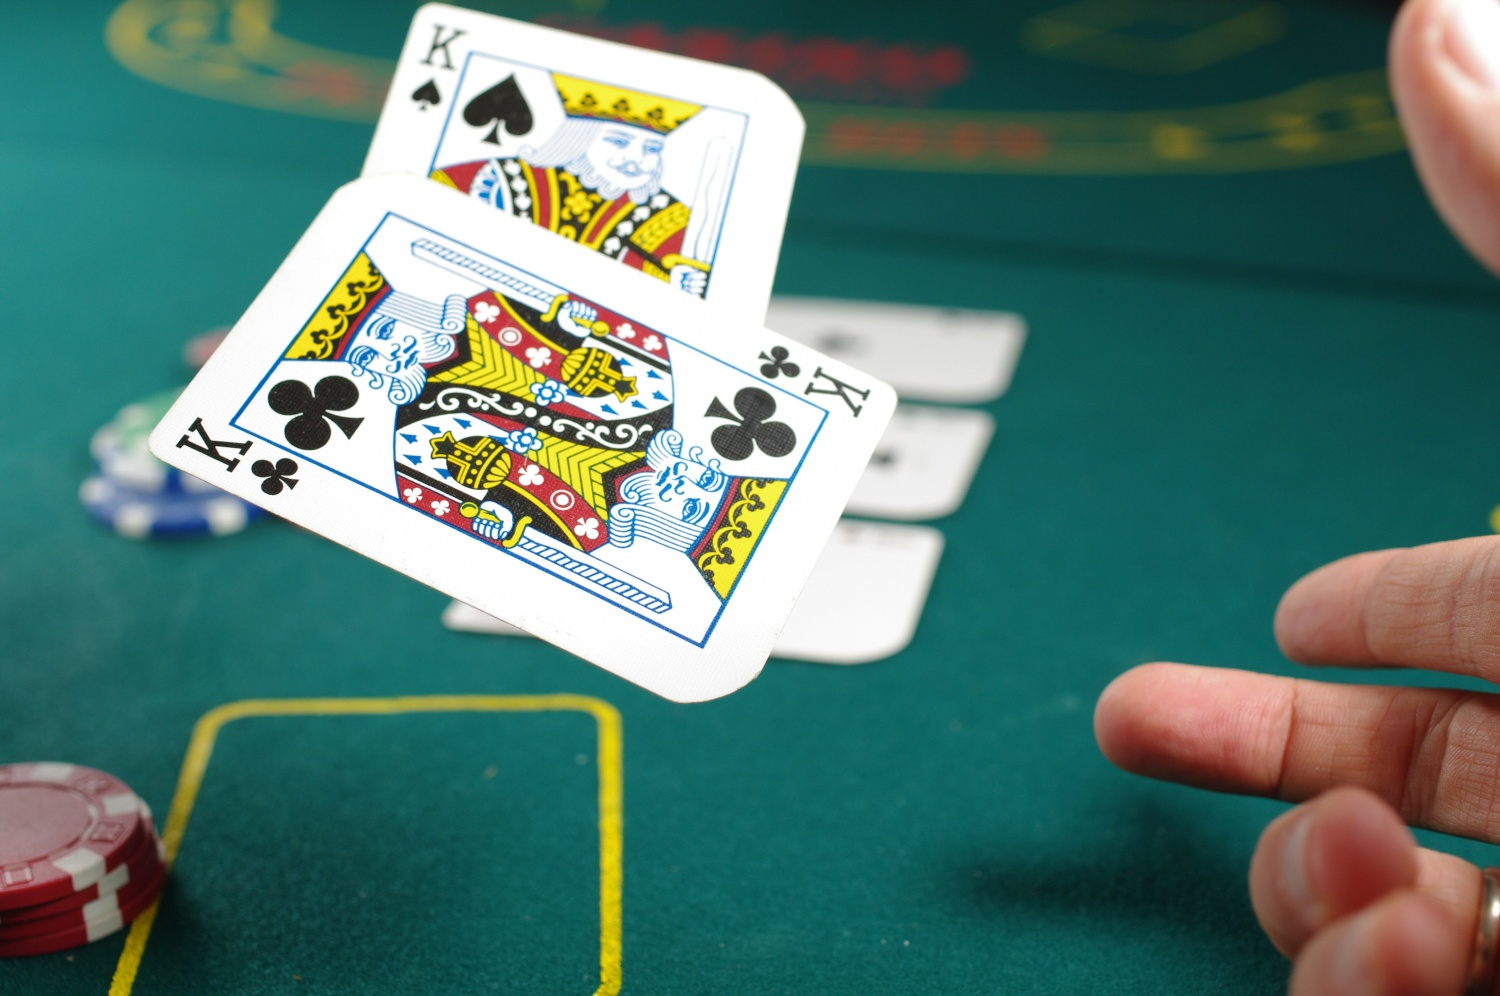 Online Live Casino Now Faces Demand; Here's a Warning Though | Tech Times